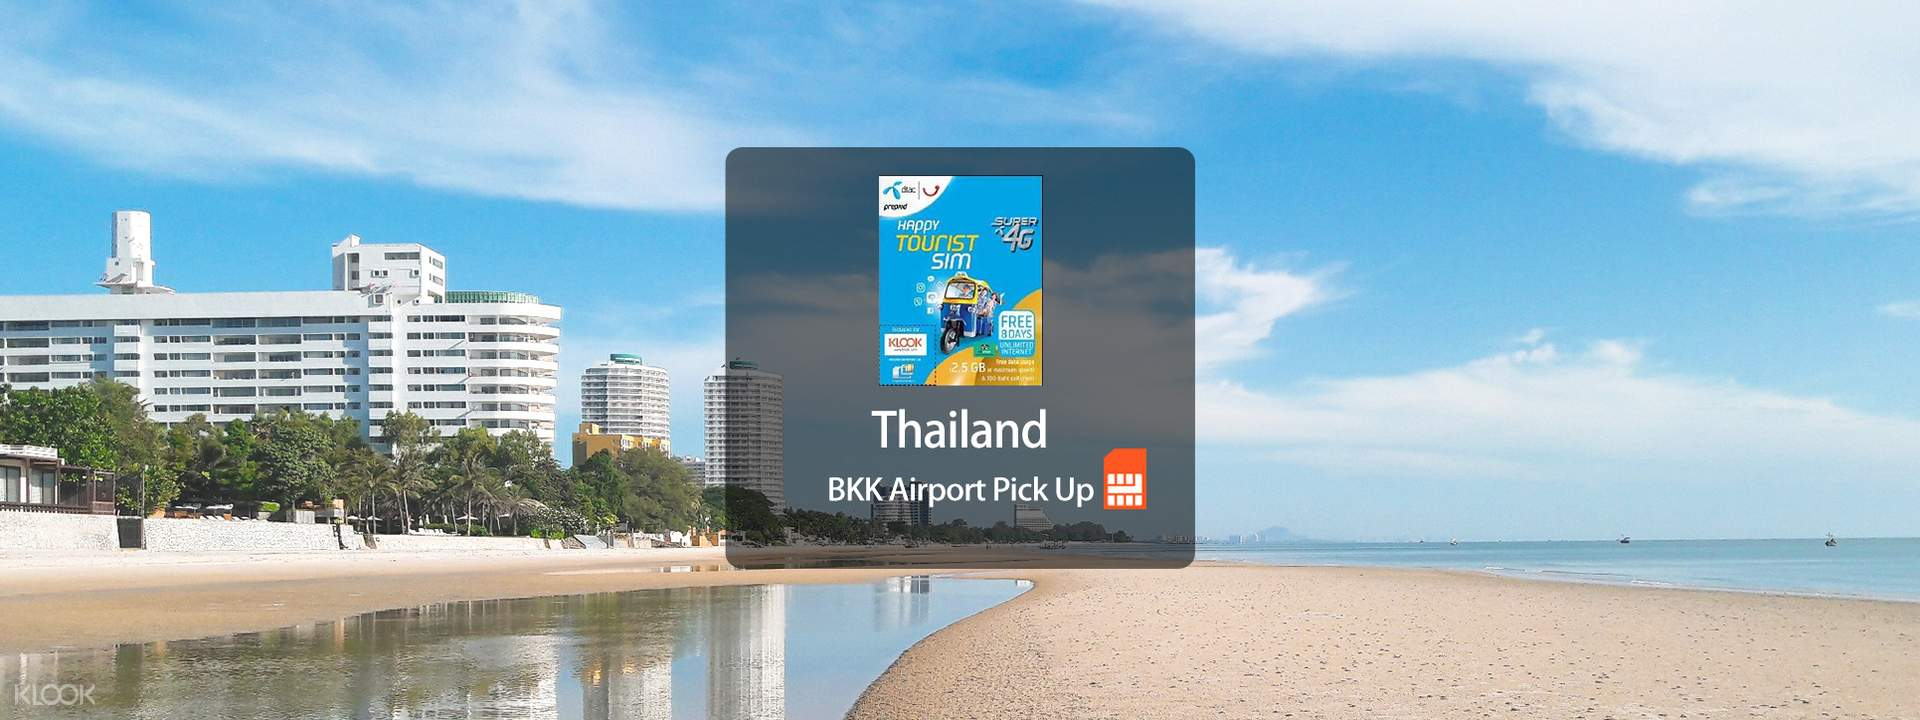 [SALE] 4G SIM Card (Klook Counter at BKK Airport Pick Up